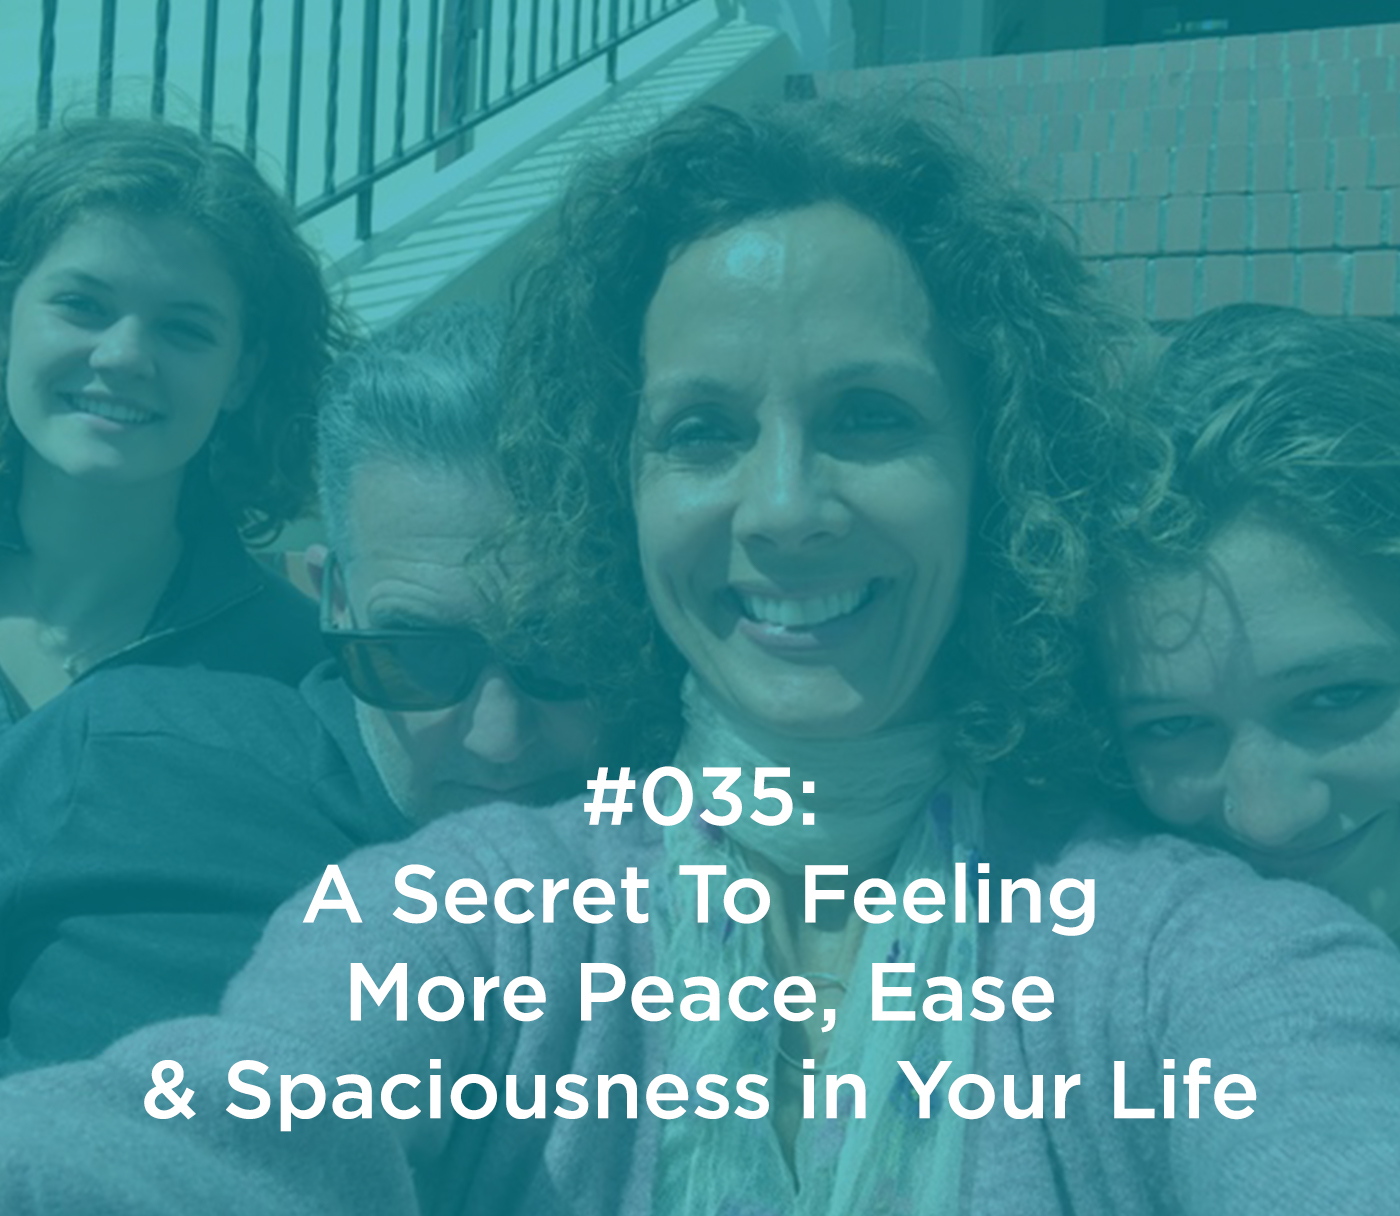 A Secret To Feeling More Peace, Ease & Spaciousness in Your Life